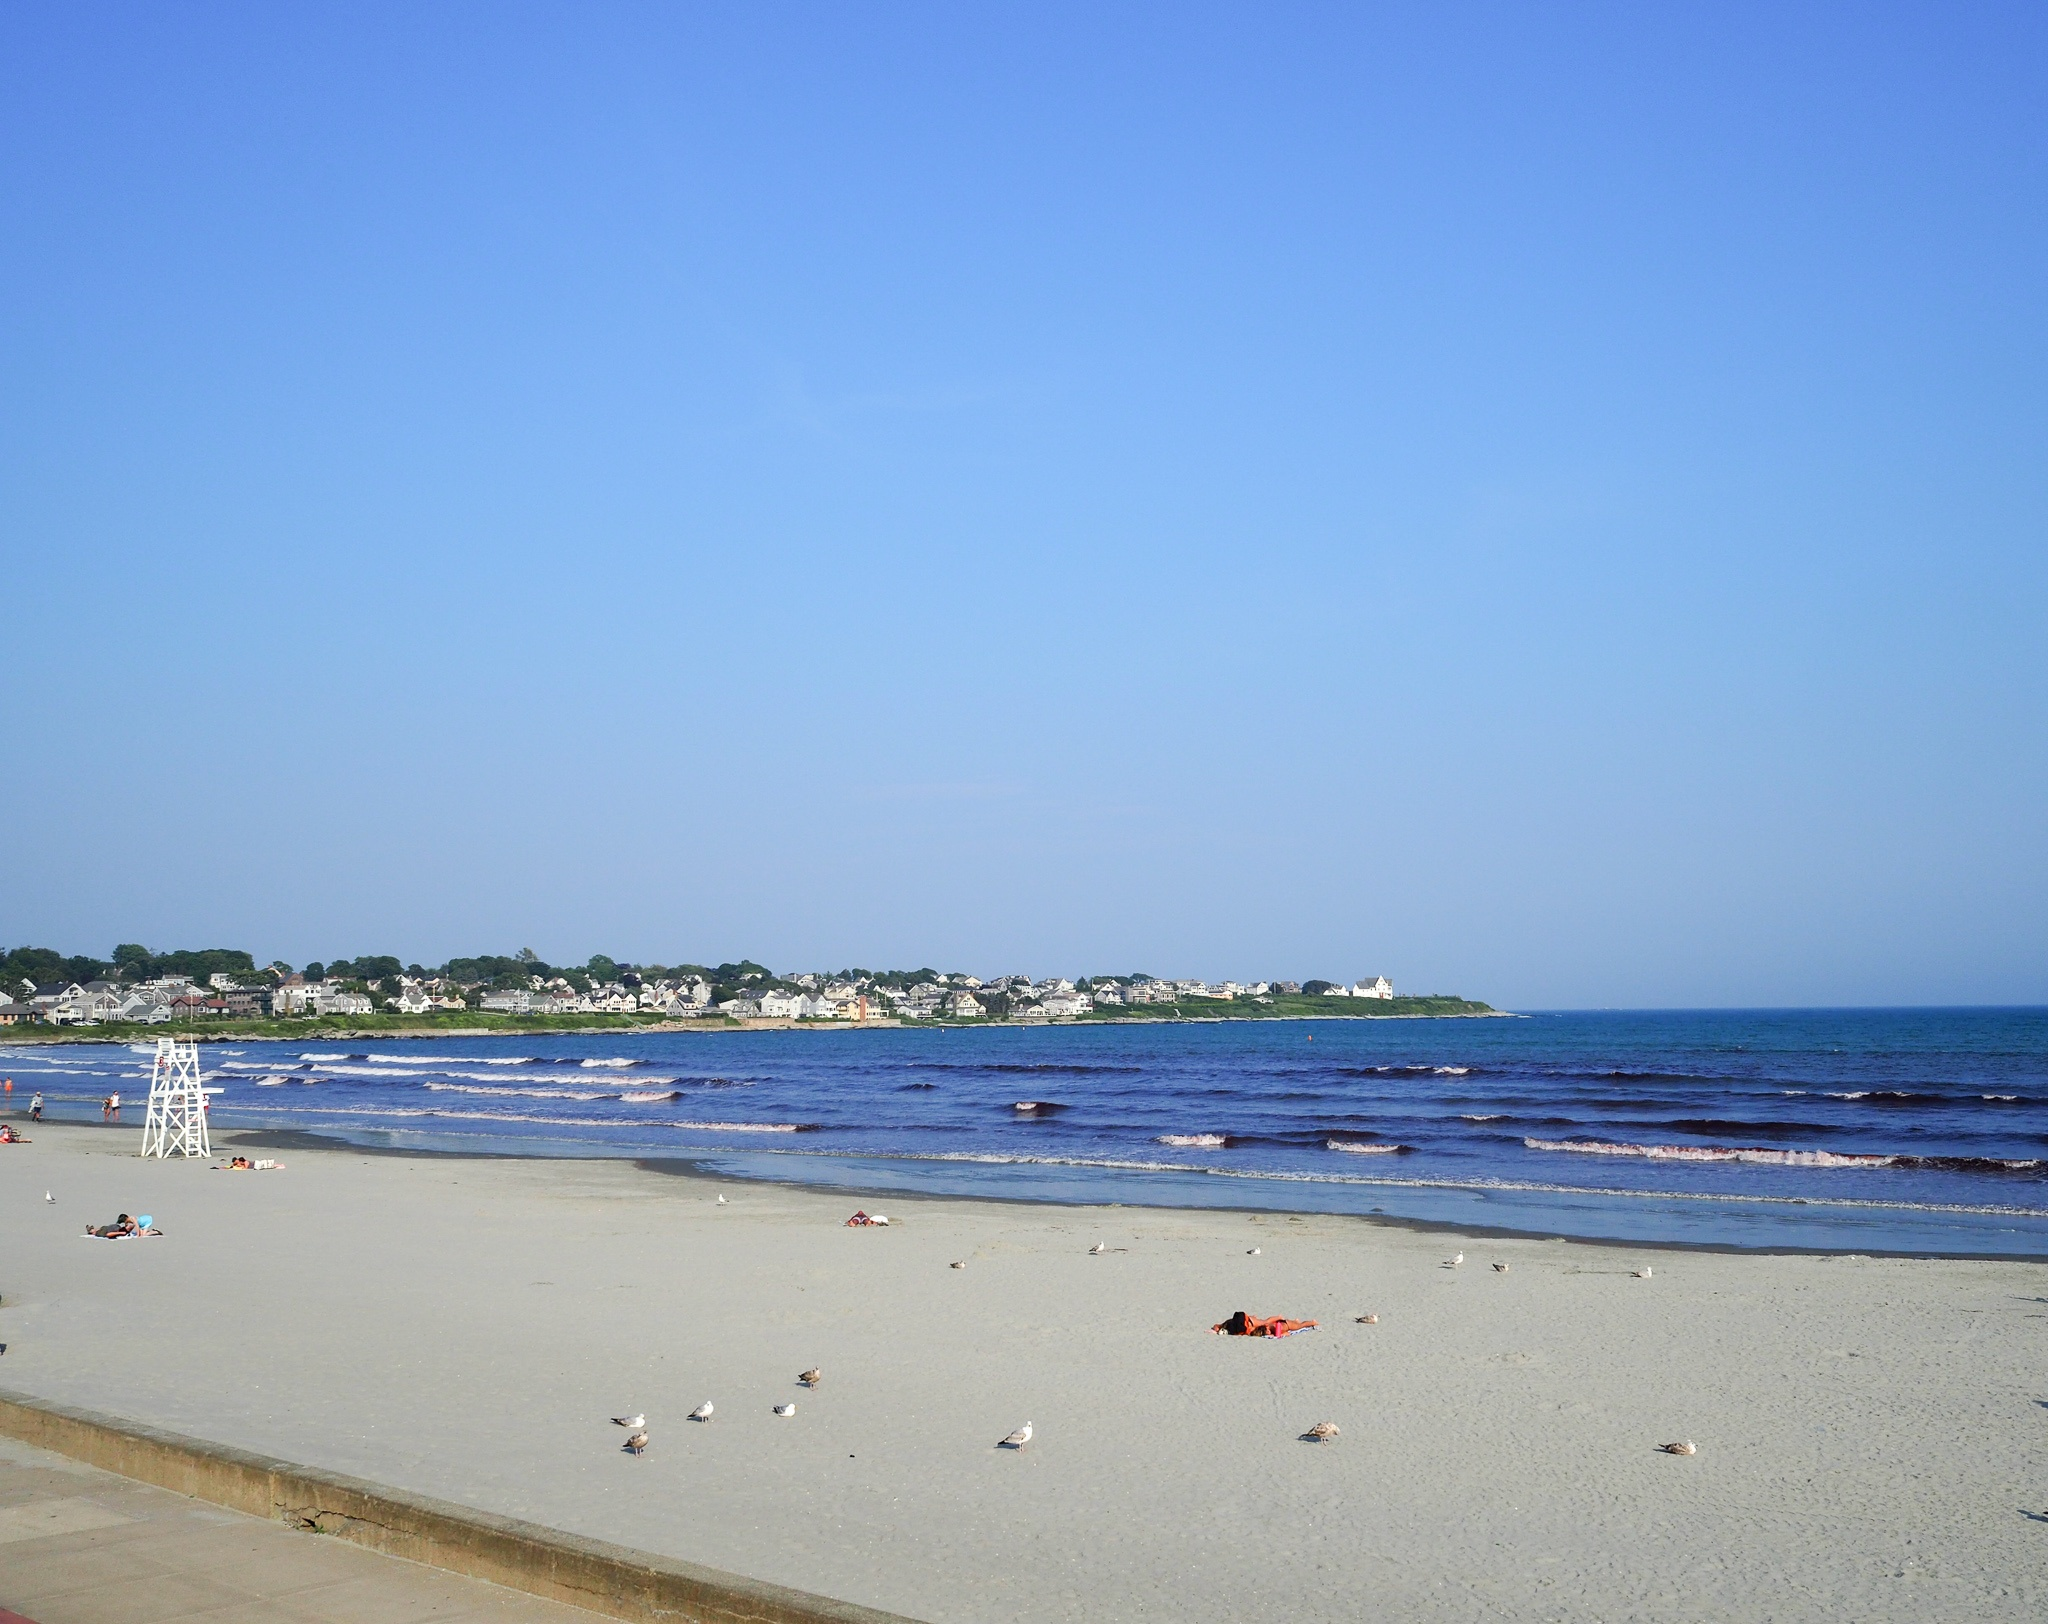 Easton Beach has lots to offer during the summer some of the many activities to enjoy while having a beach day is the 1950's carousel, Save the Bay Aquarium ($9 general admission), surfing, and Easton Beach Snack Bar.